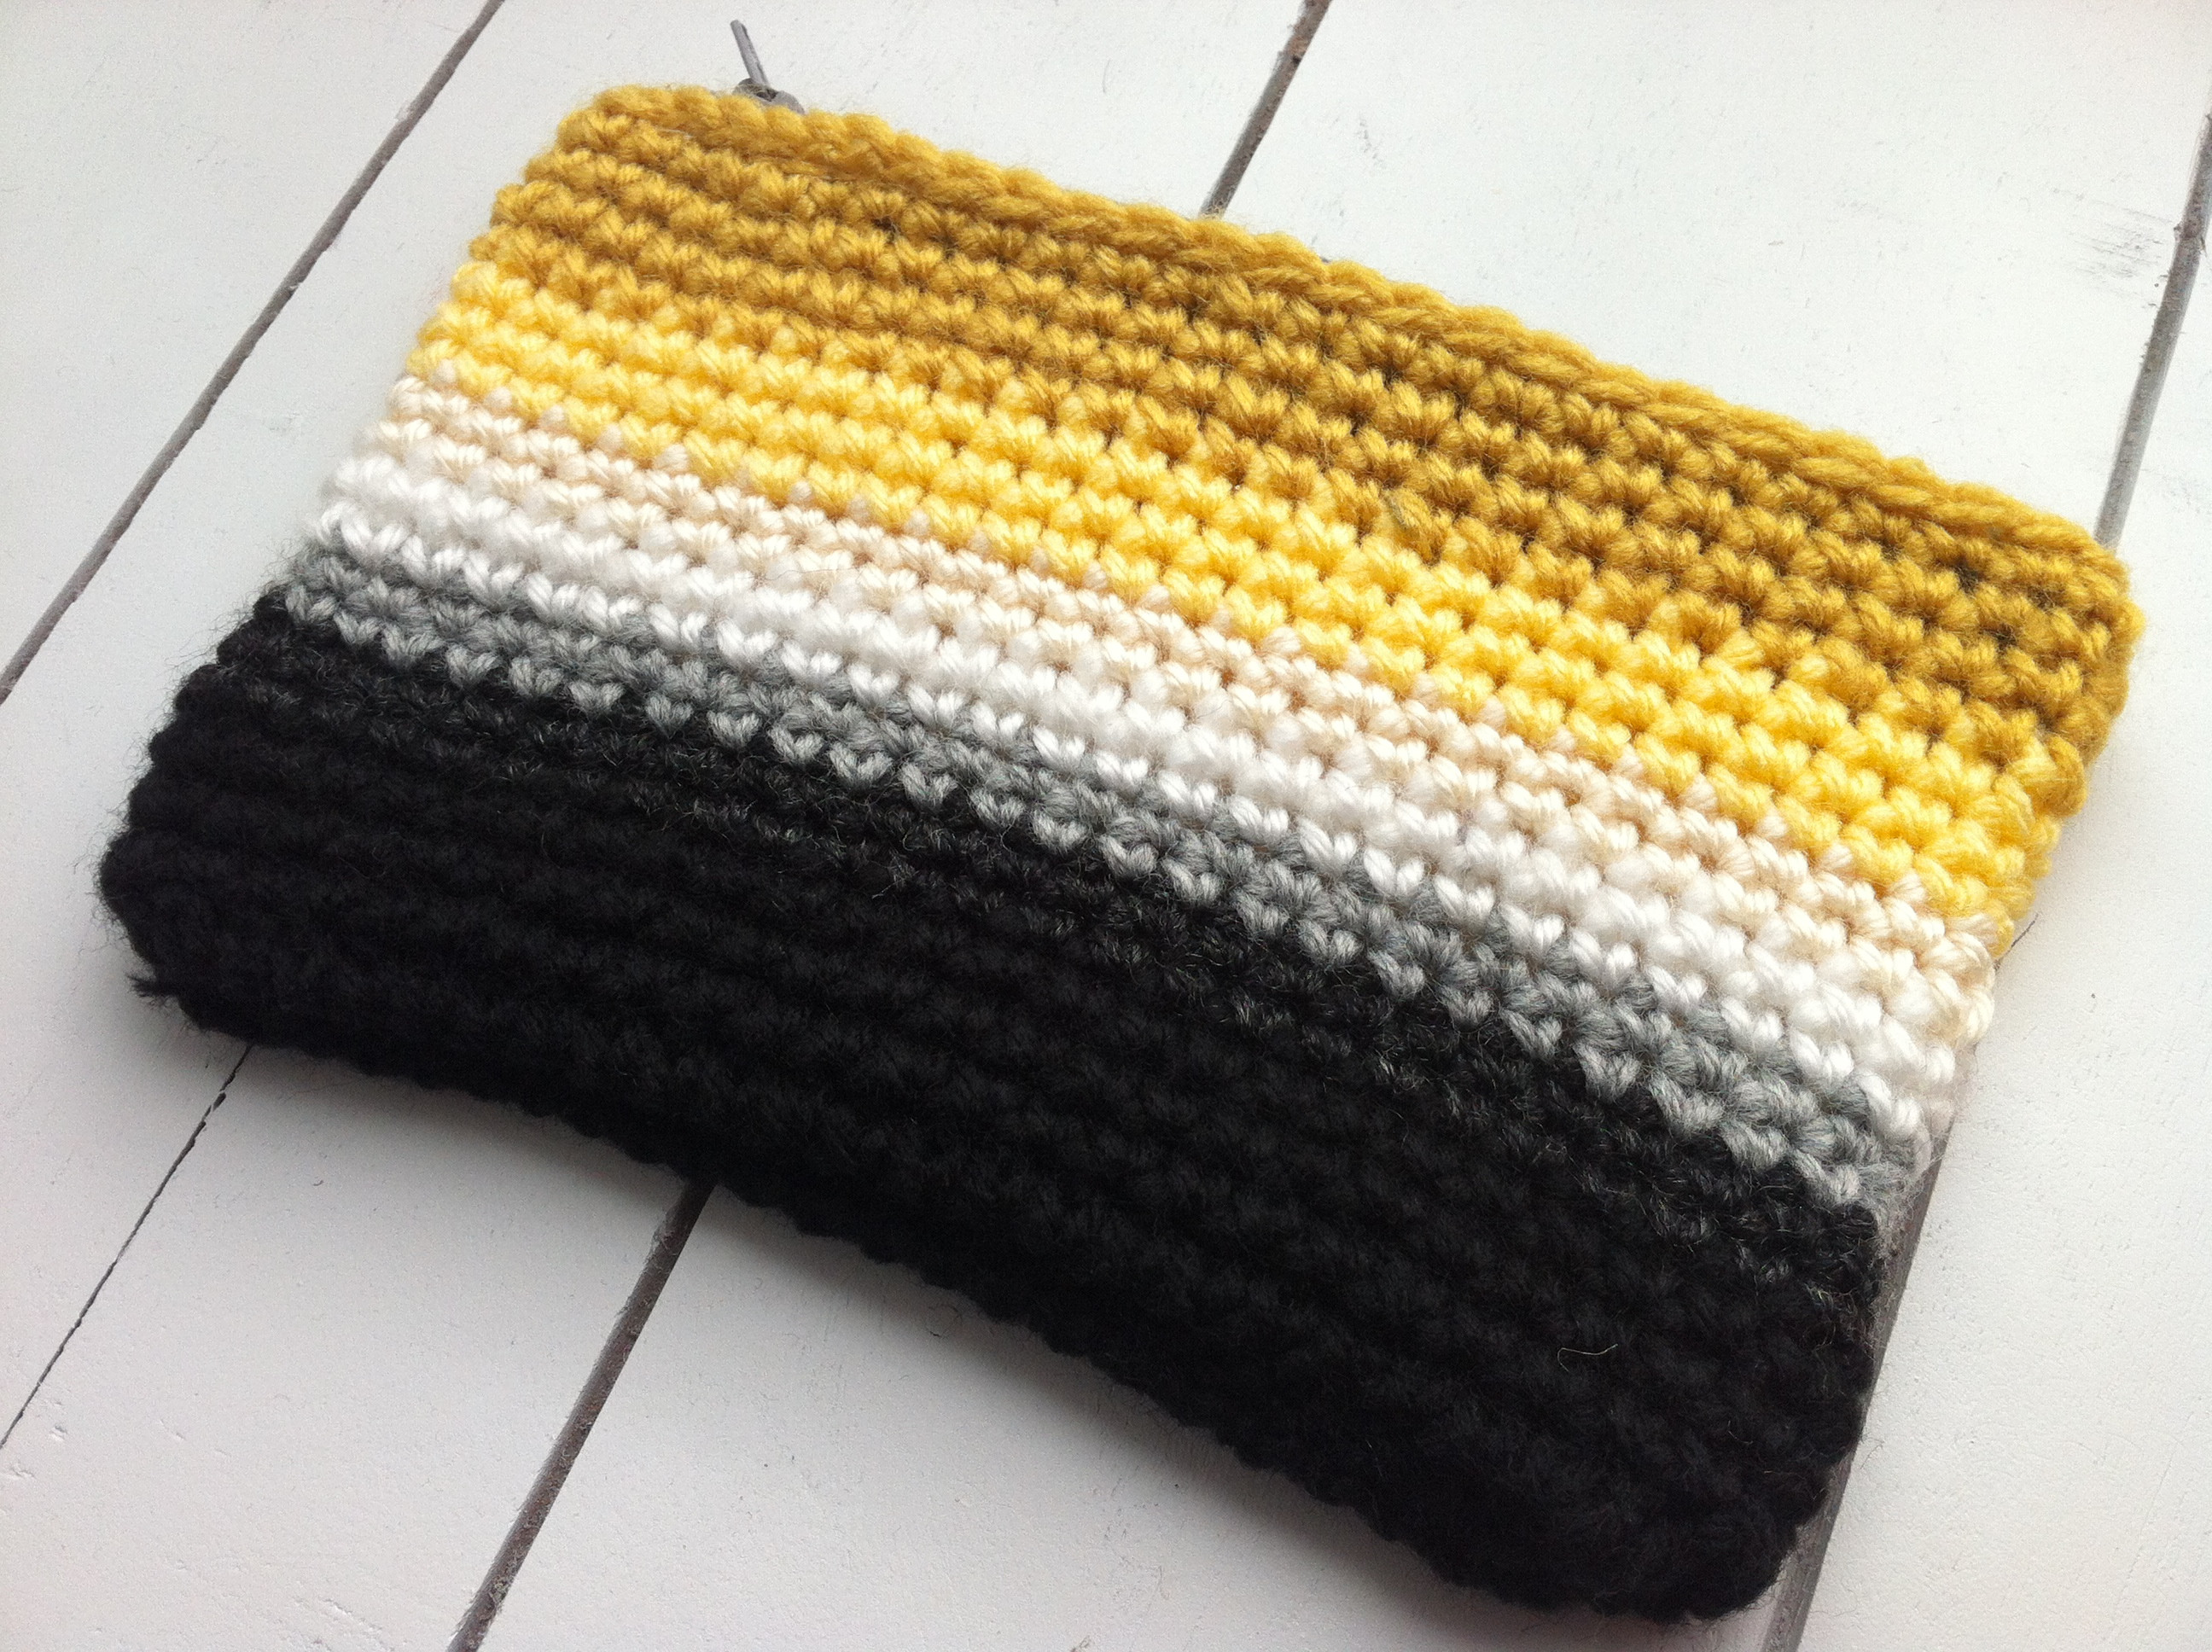 Crochet Pouch Lovely Crochet Ombre Zipper Pouch Of Awesome 48 Pics Crochet Pouch